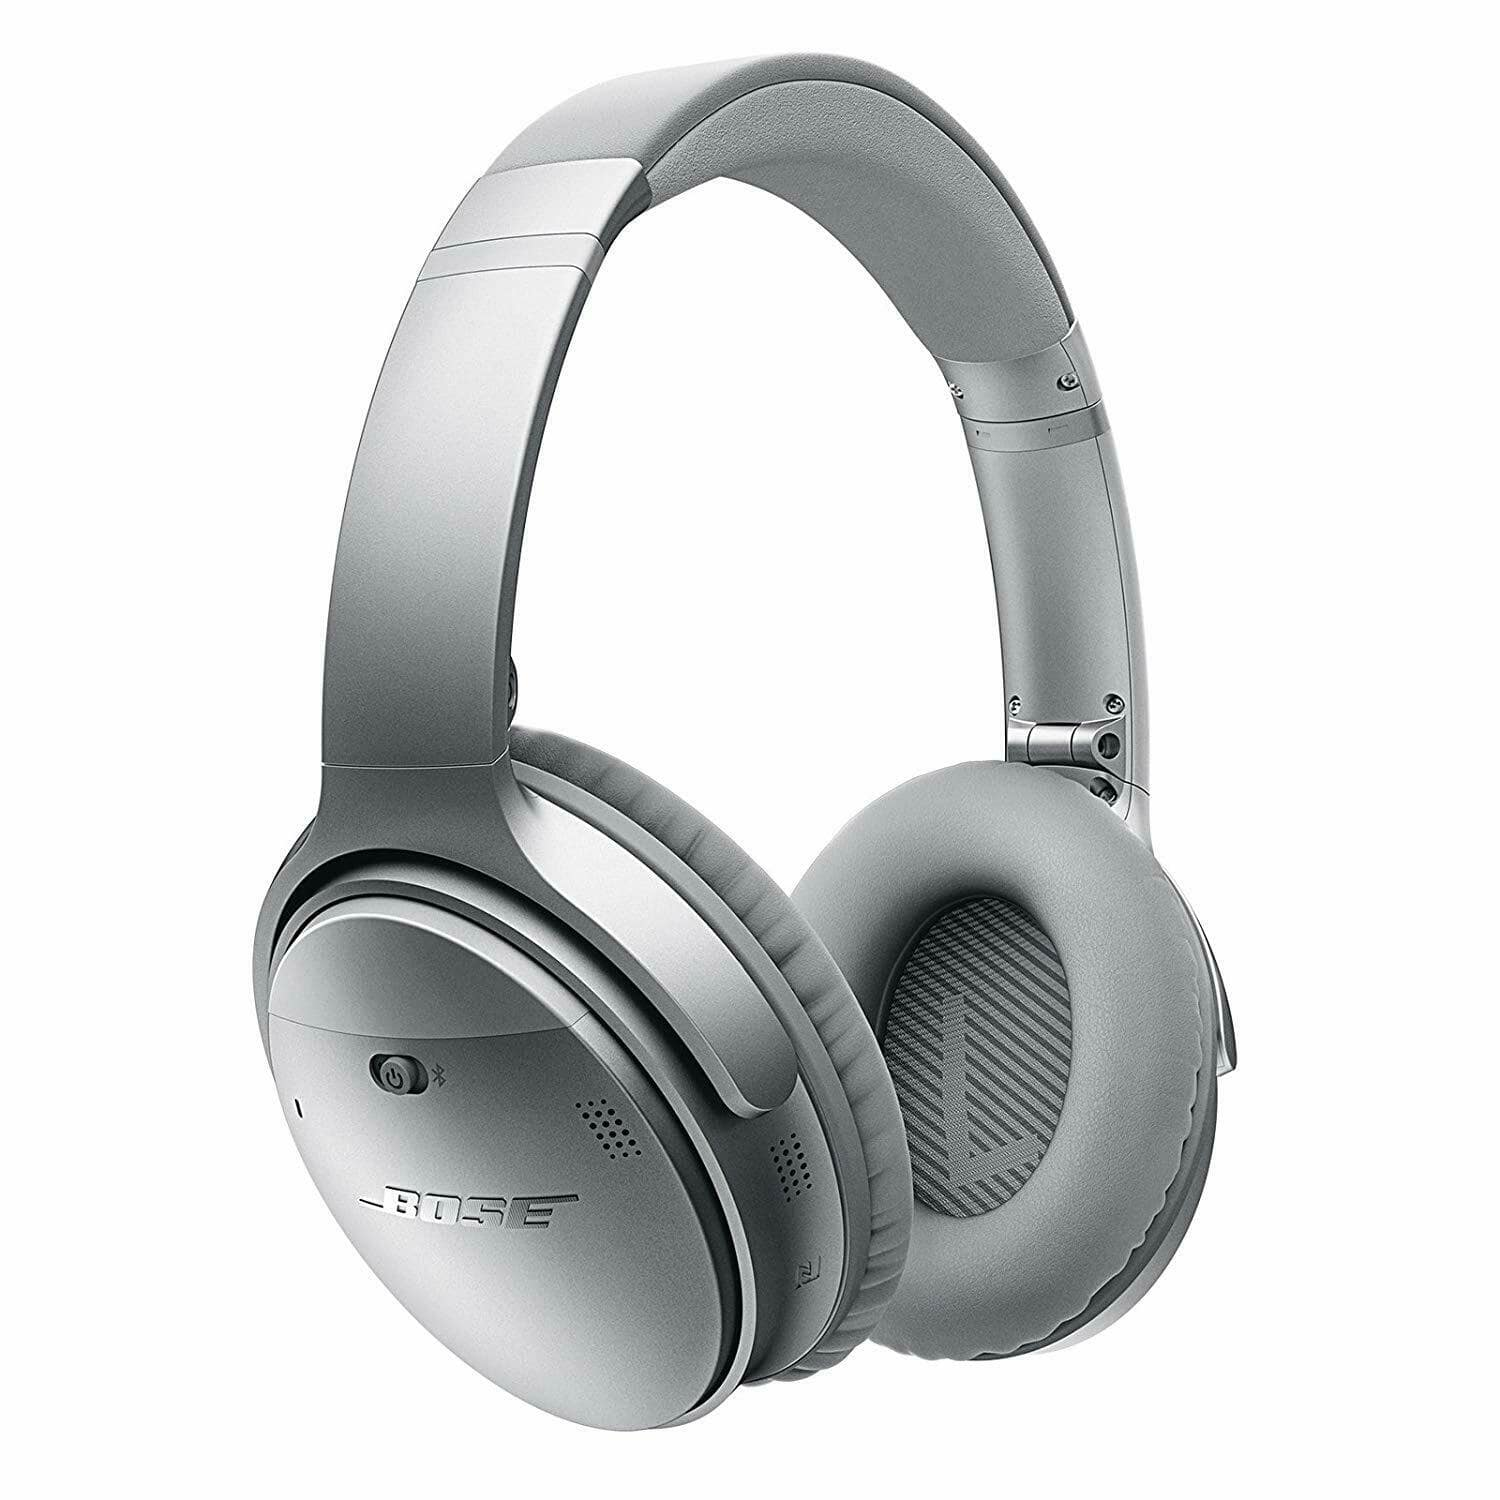 Bose QuietComfort 35 Series I Wireless Headphones (Silver) $170 + Free Shipping